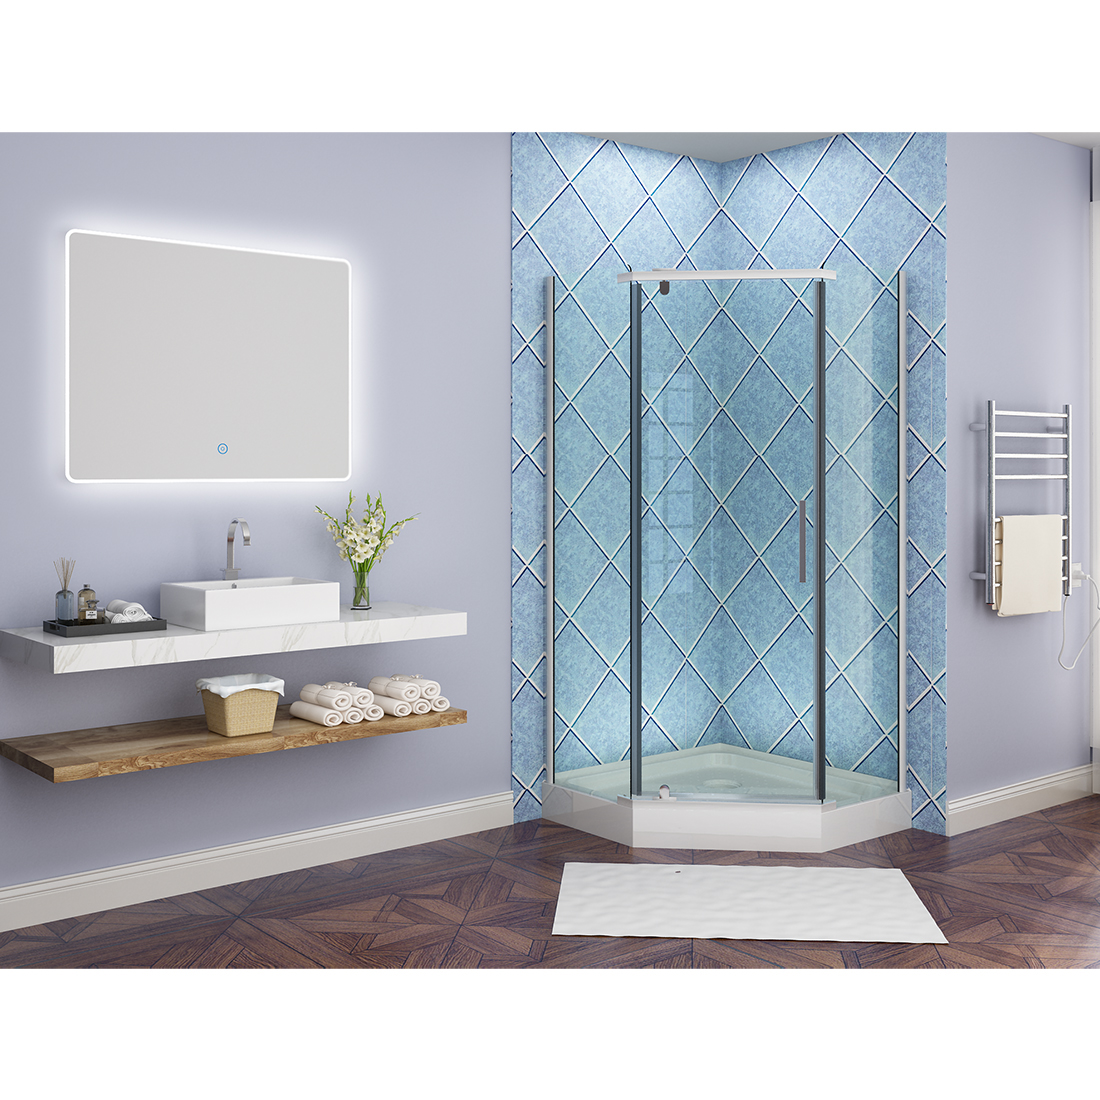 SUNNY SHOWER LED Bathroom Vanity Mirror w/ Touch Button vertically ...